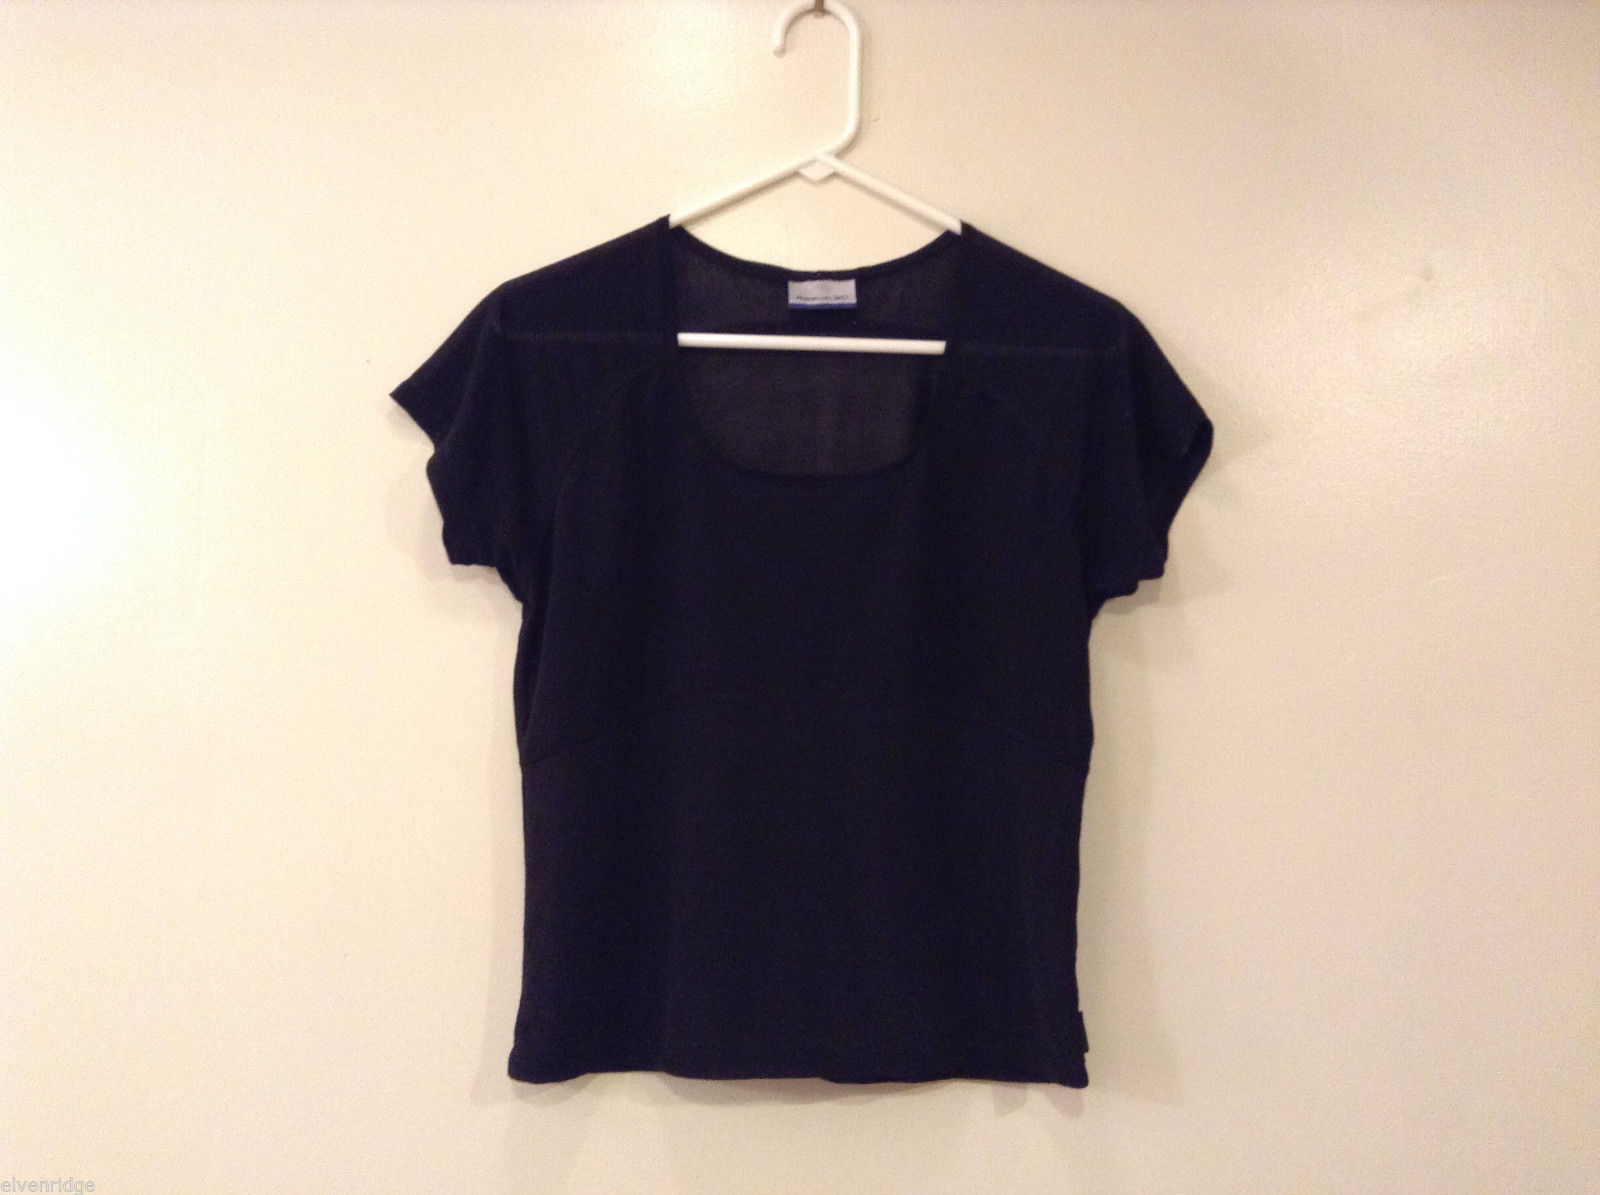 Ladies Reebok Black two tone T-Shirt Blouse, Size M (No tag, see measurements)